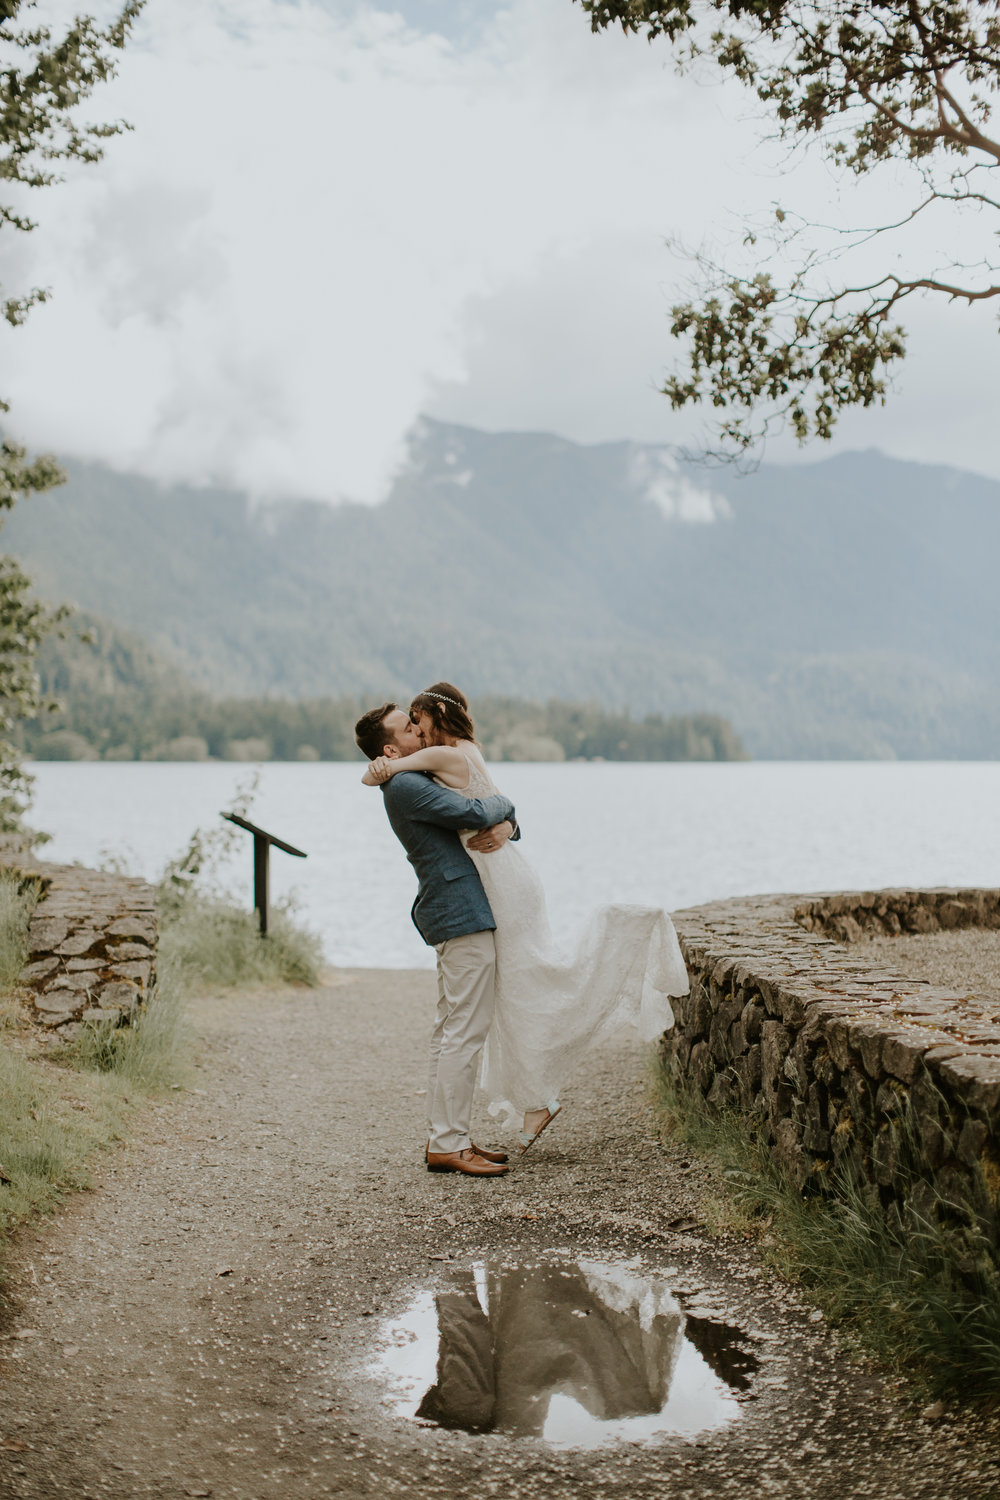 PNW-elopement-wedding-engagement-olympic national park-port angeles-hurricane ridge-lake crescent-kayla dawn photography- photographer-photography-kayladawnphoto-230.jpg